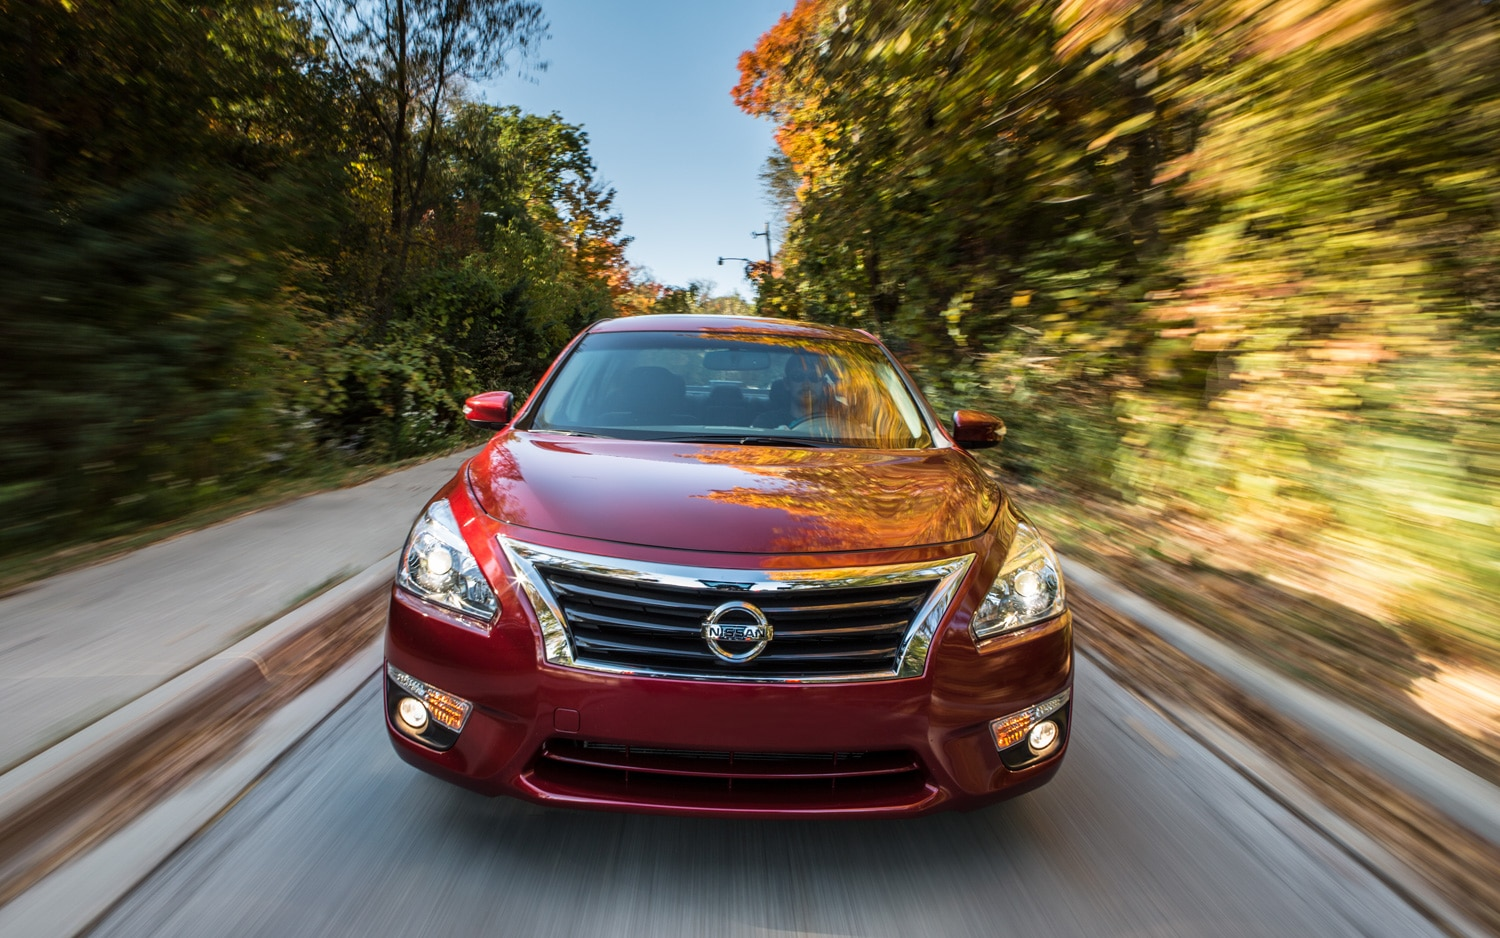 2013 Nissan Altima 3 5 SL Front View1